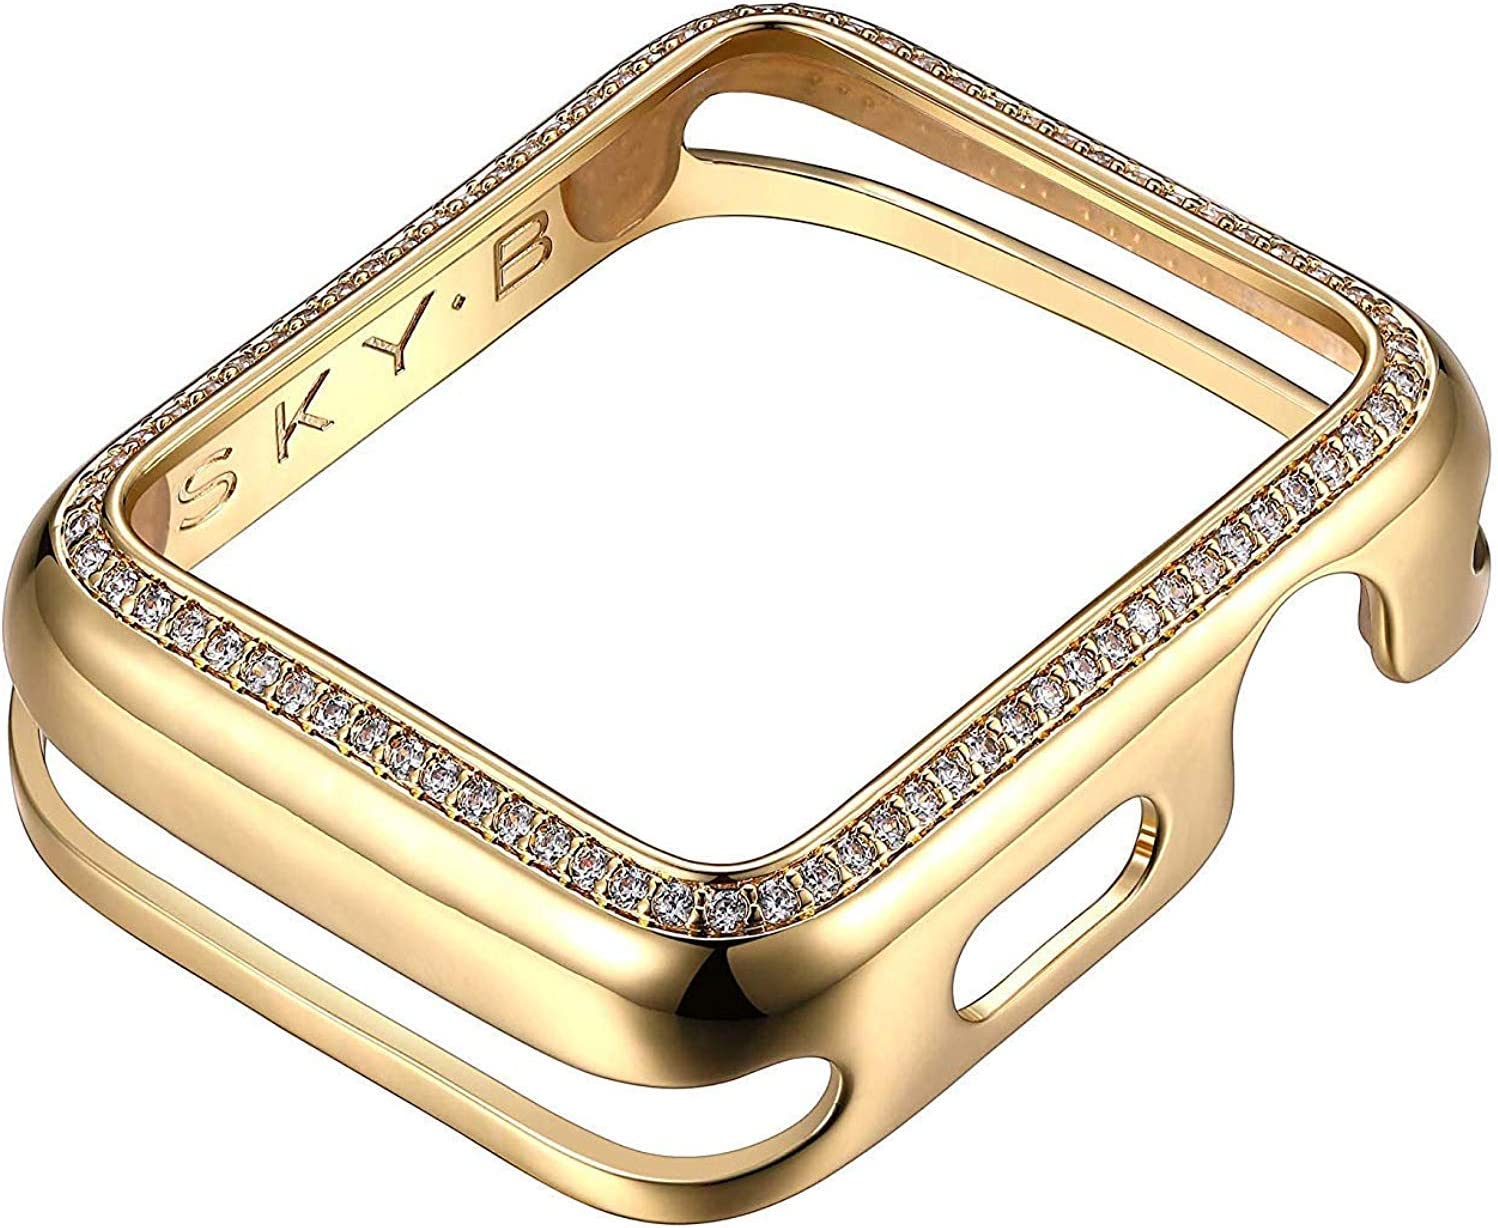 SKYB 18K Yellow Gold Plated Halo Jewelry-Style Apple Watch Case with Cubic Zirconia CZ Border - Medium (Fits 40mm Series 4/5 iWatch)